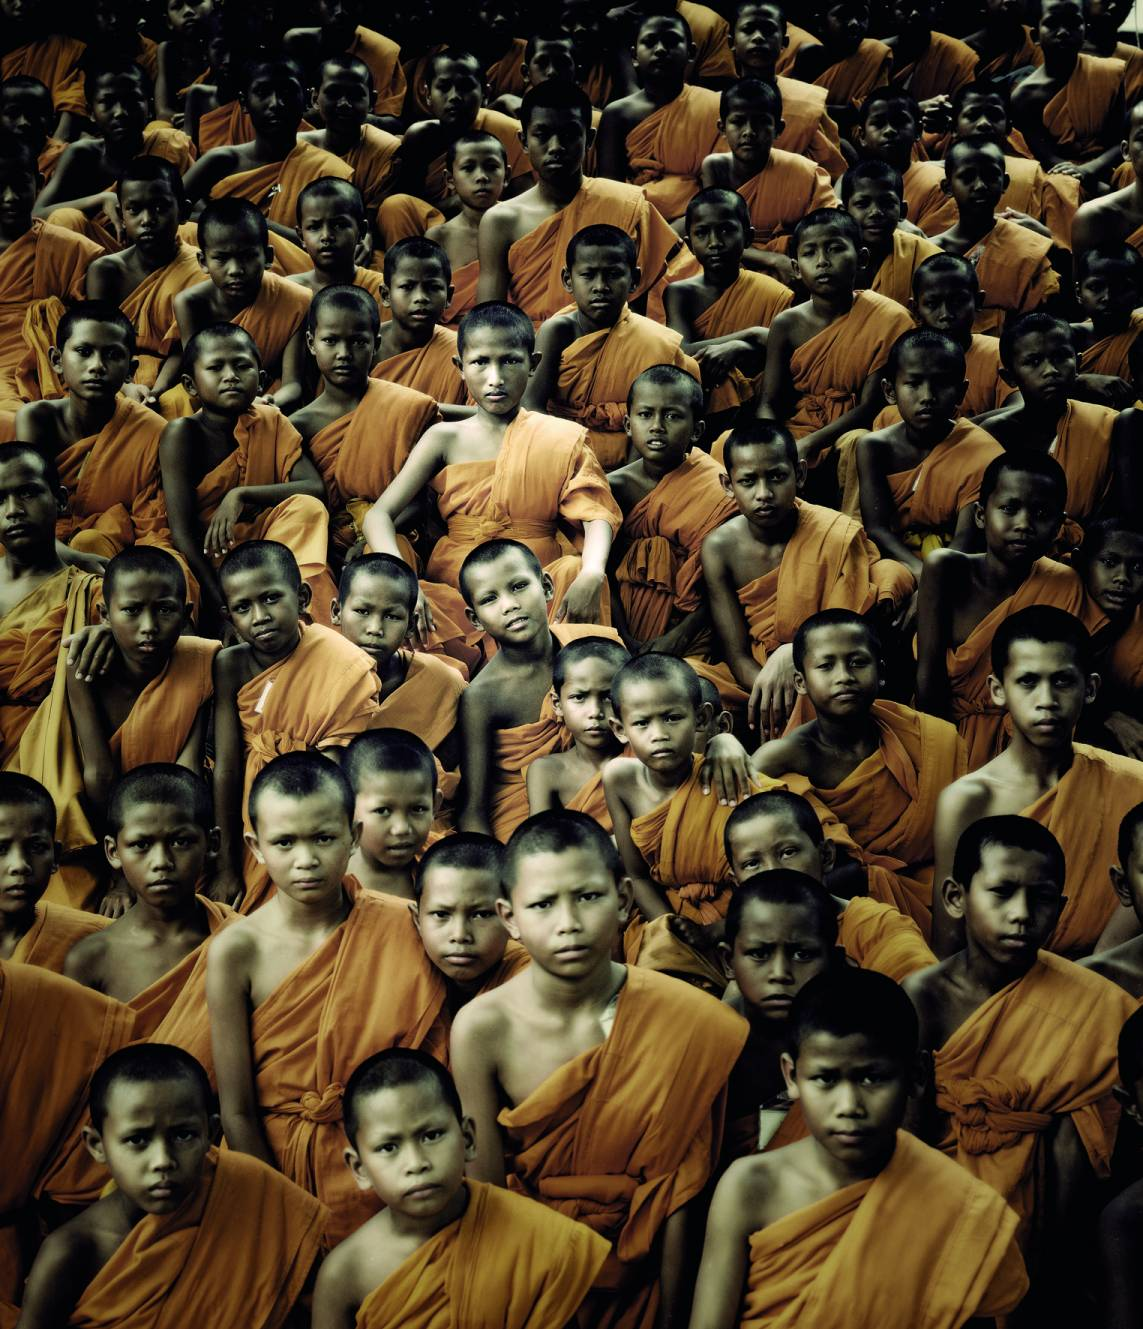 Stunning Photographs Of The World's Last Indigenous Tribes - BUDDHIST MONKS